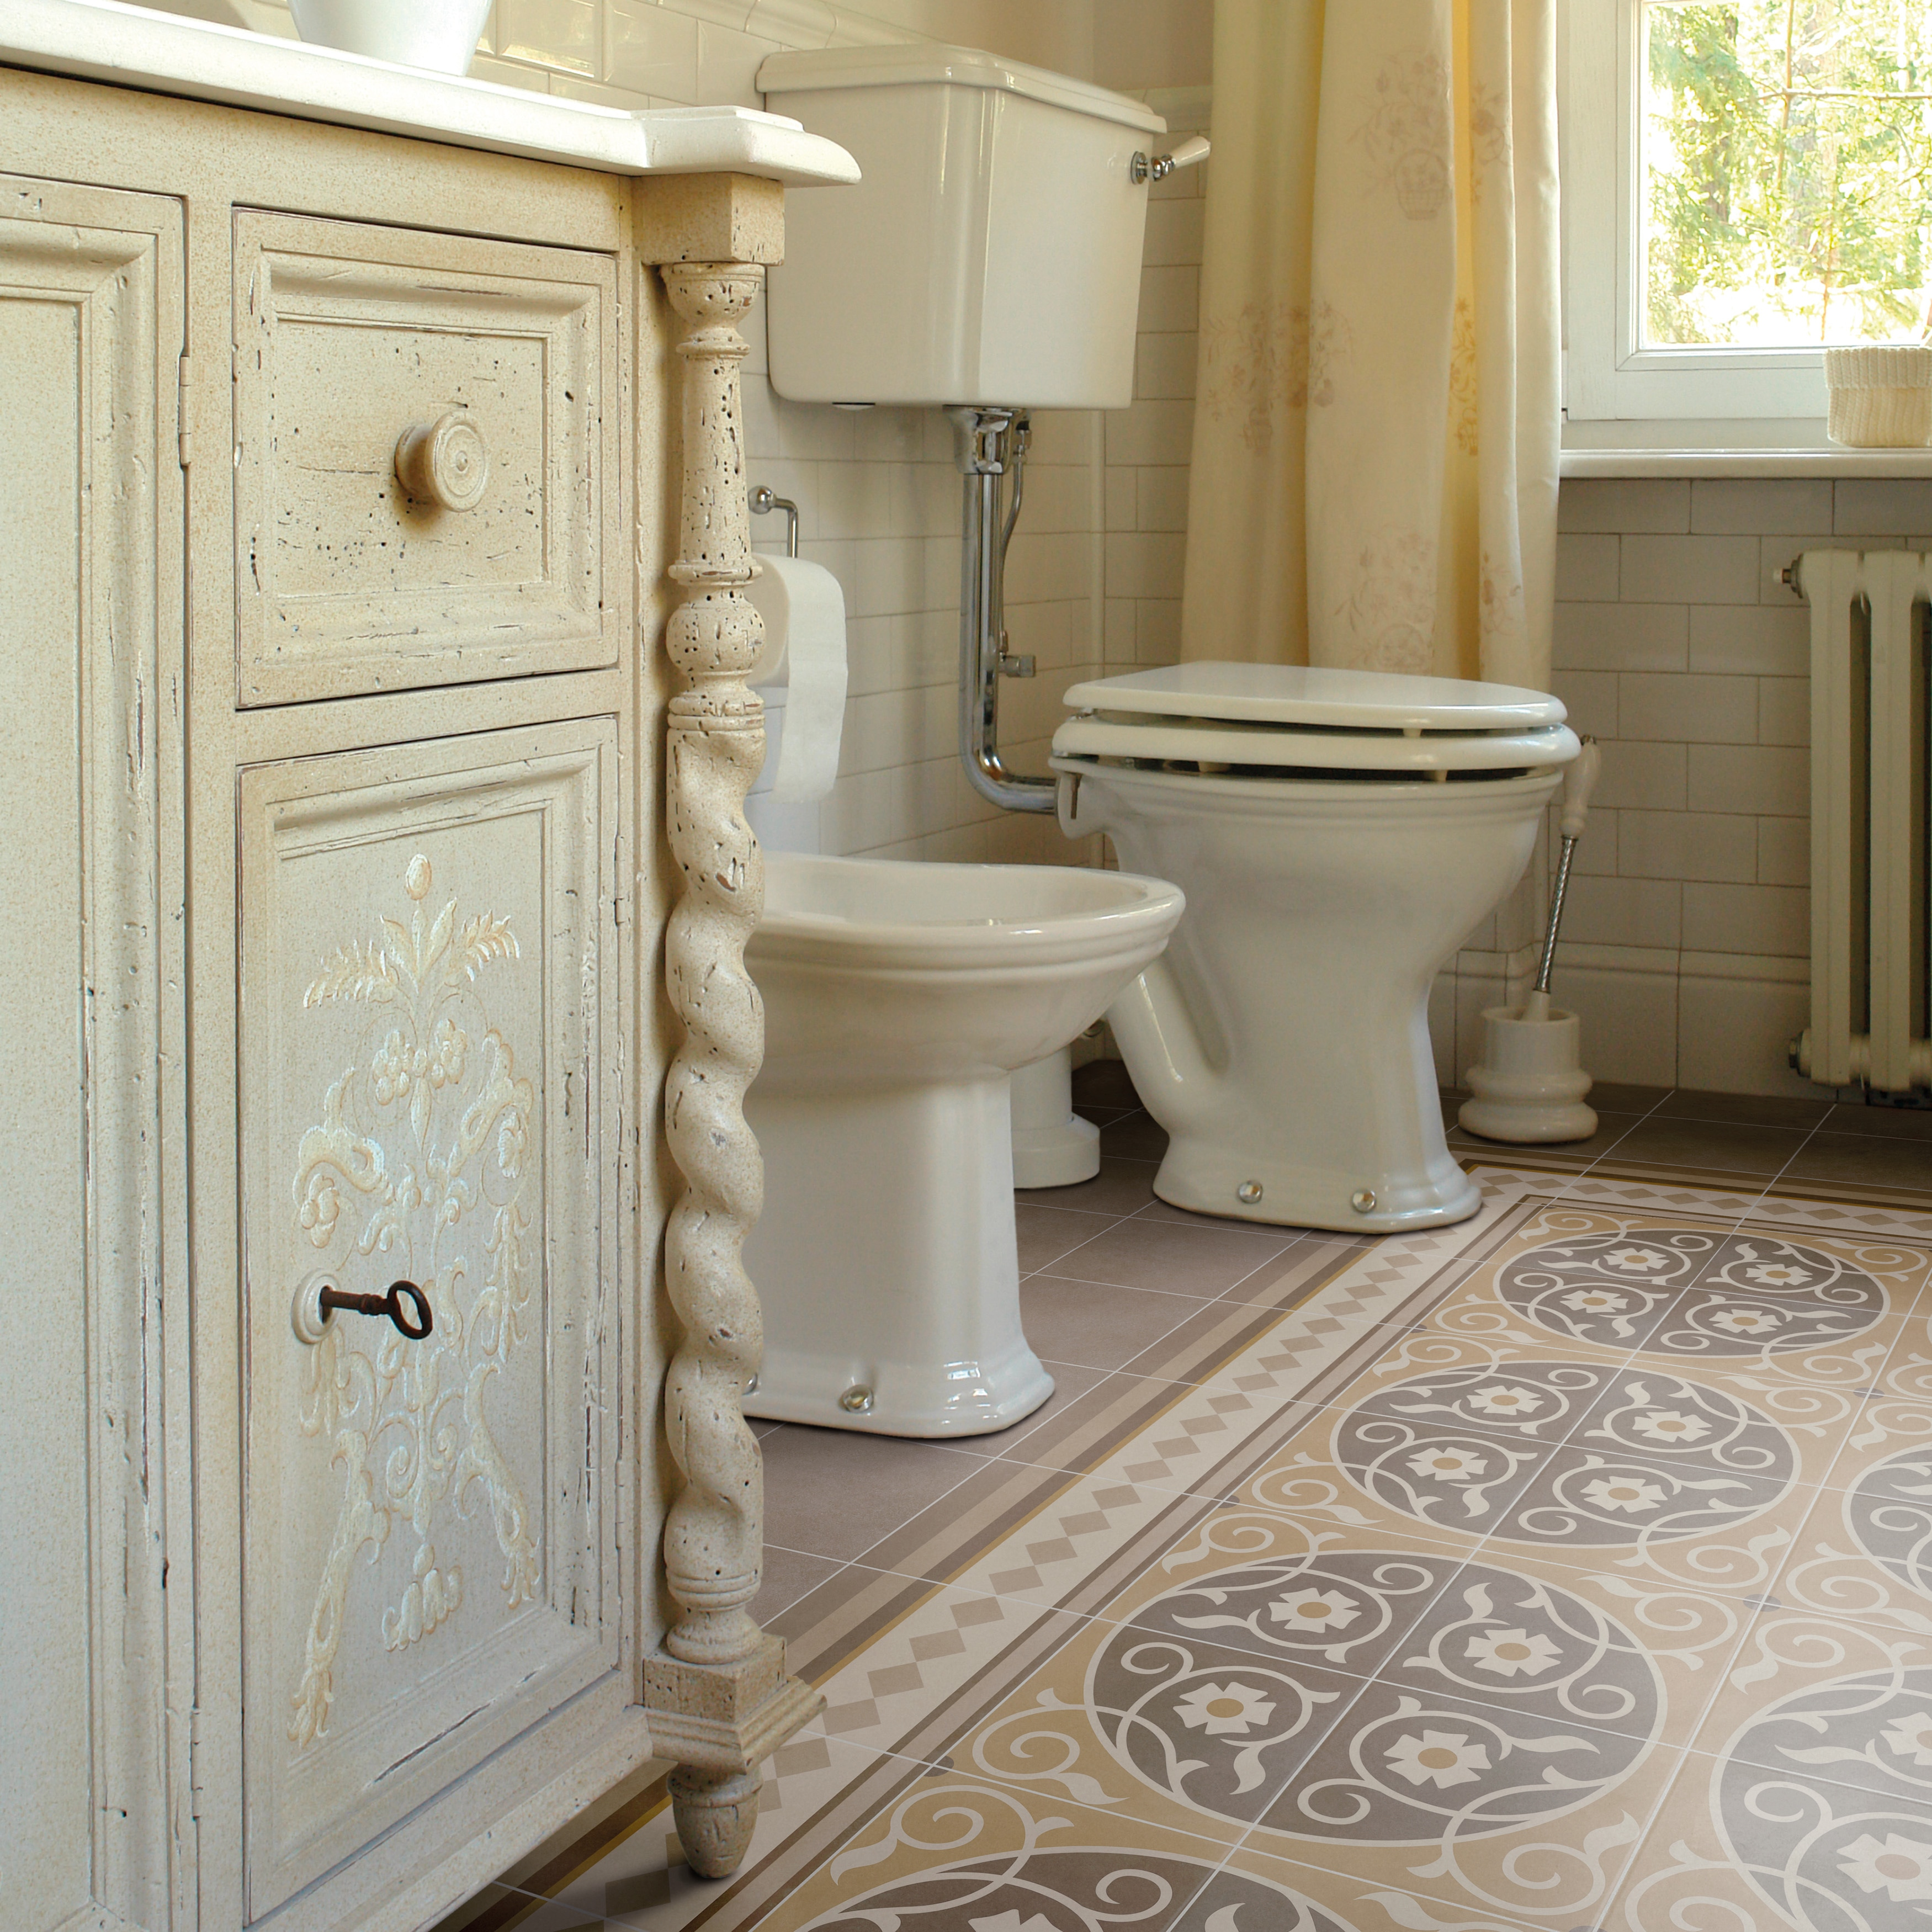 Somertile 7 875x7 875 Inch Piccola Loire Border Porcelain Floor And Wall Tile Free Shipping On Orders Over 45 14389222